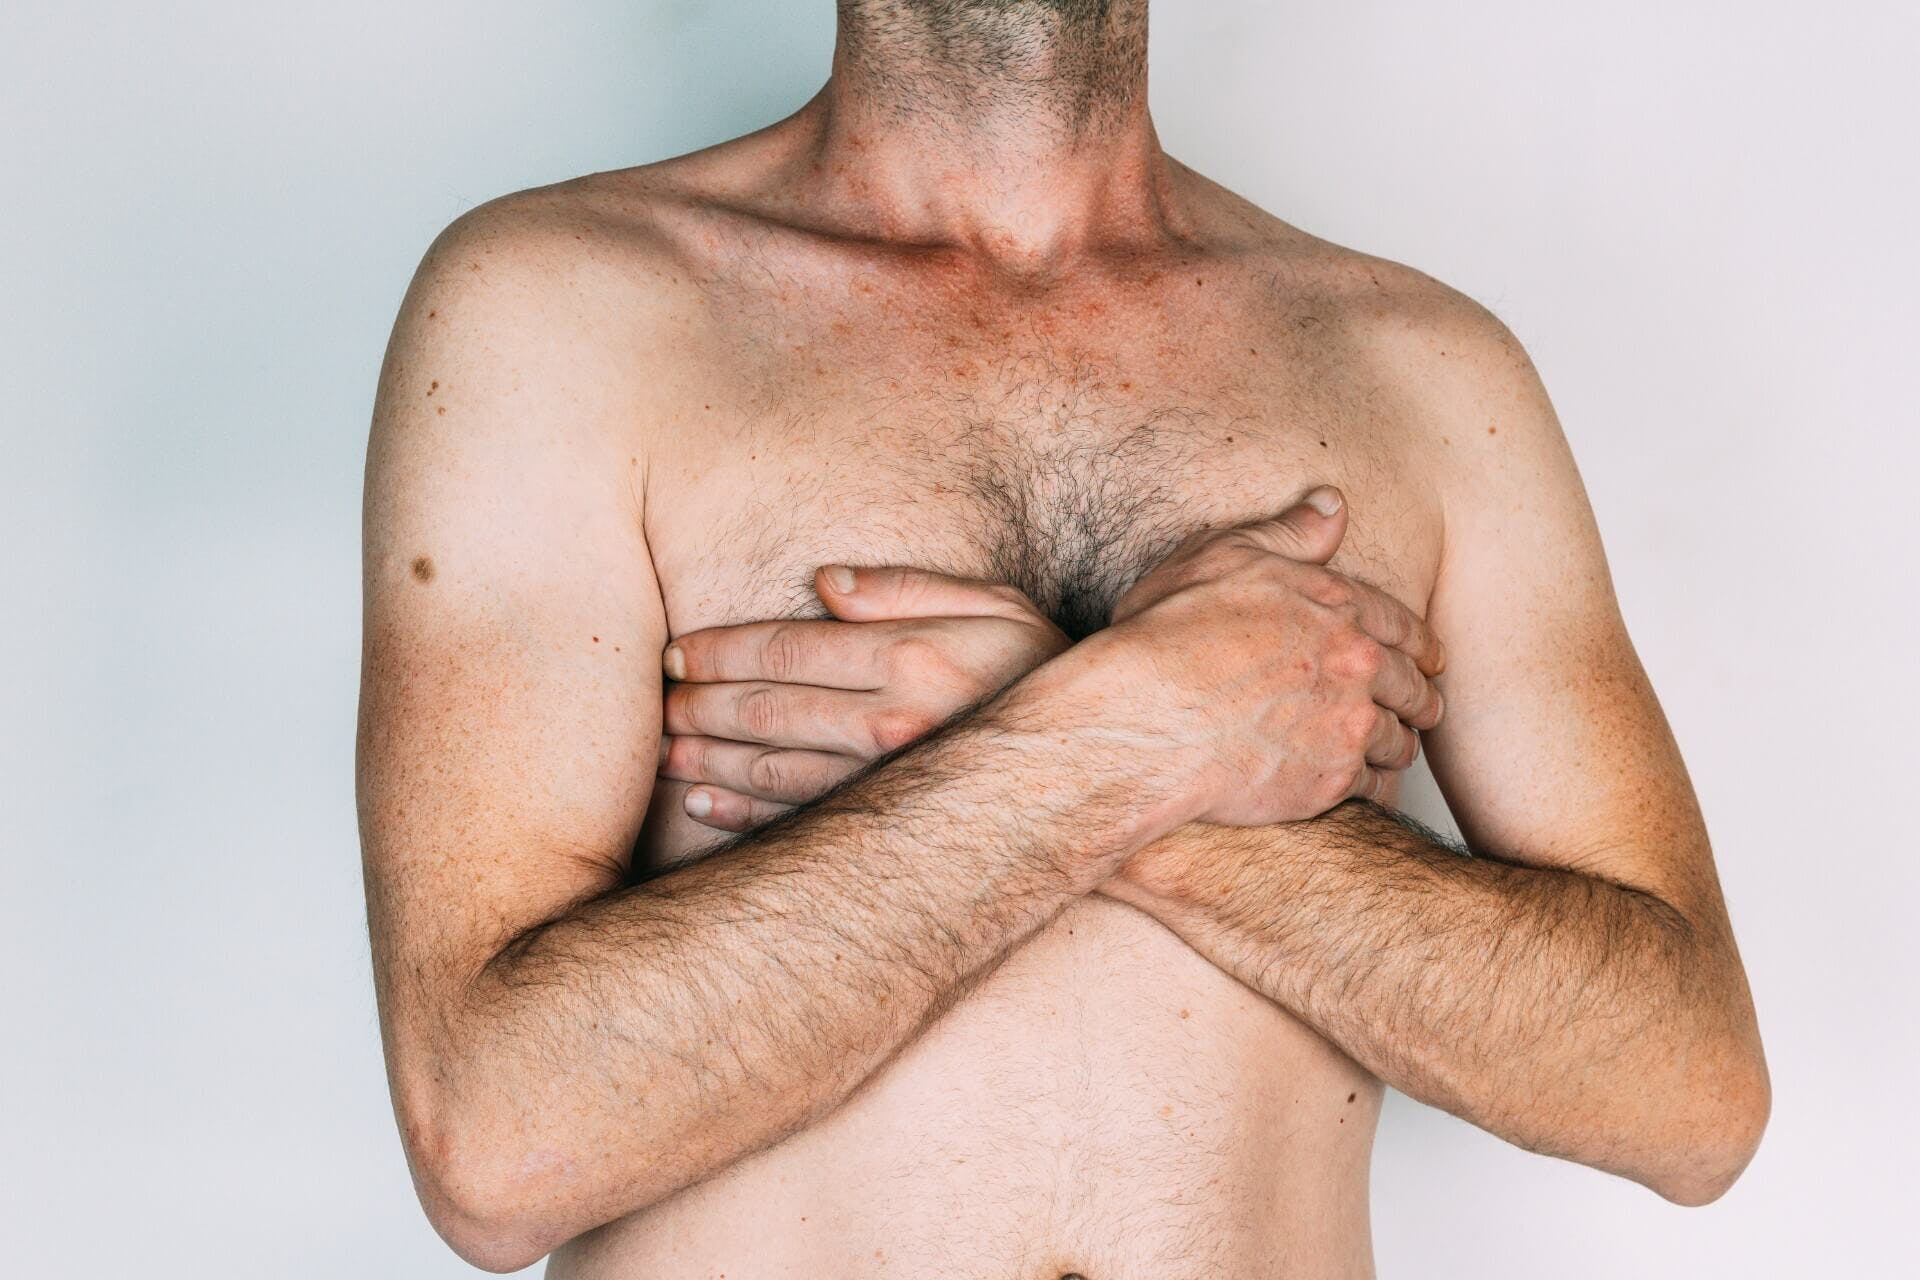 Man covering his chest with his hands